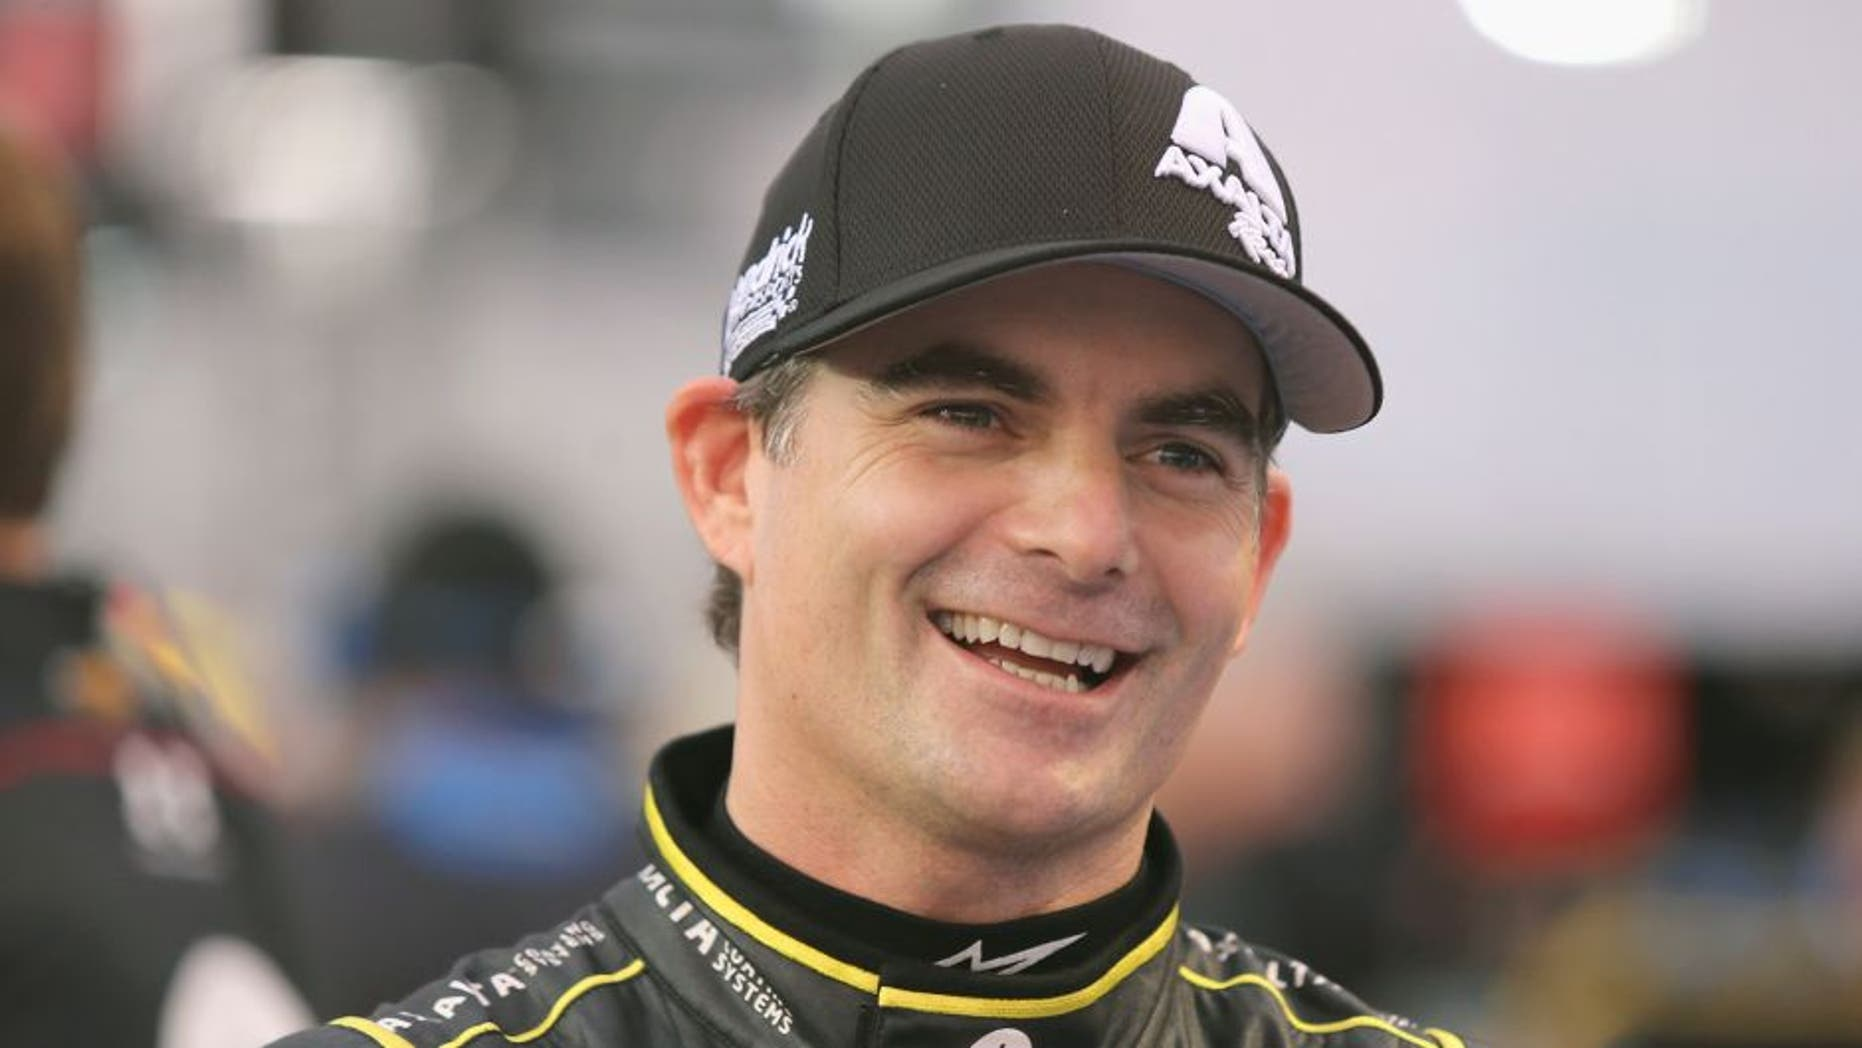 Jeff Gordon, driver of the #24 Axalta Chevrolet, looks on during Service King qualifying for the NASCAR Sprint Cup Series AAA Texas 500 at Texas Motor Speedway on November 6, 2015 in Fort Worth, Texas. (Photo by Jerry Markland/Getty Images for Texas Motor Speedway)